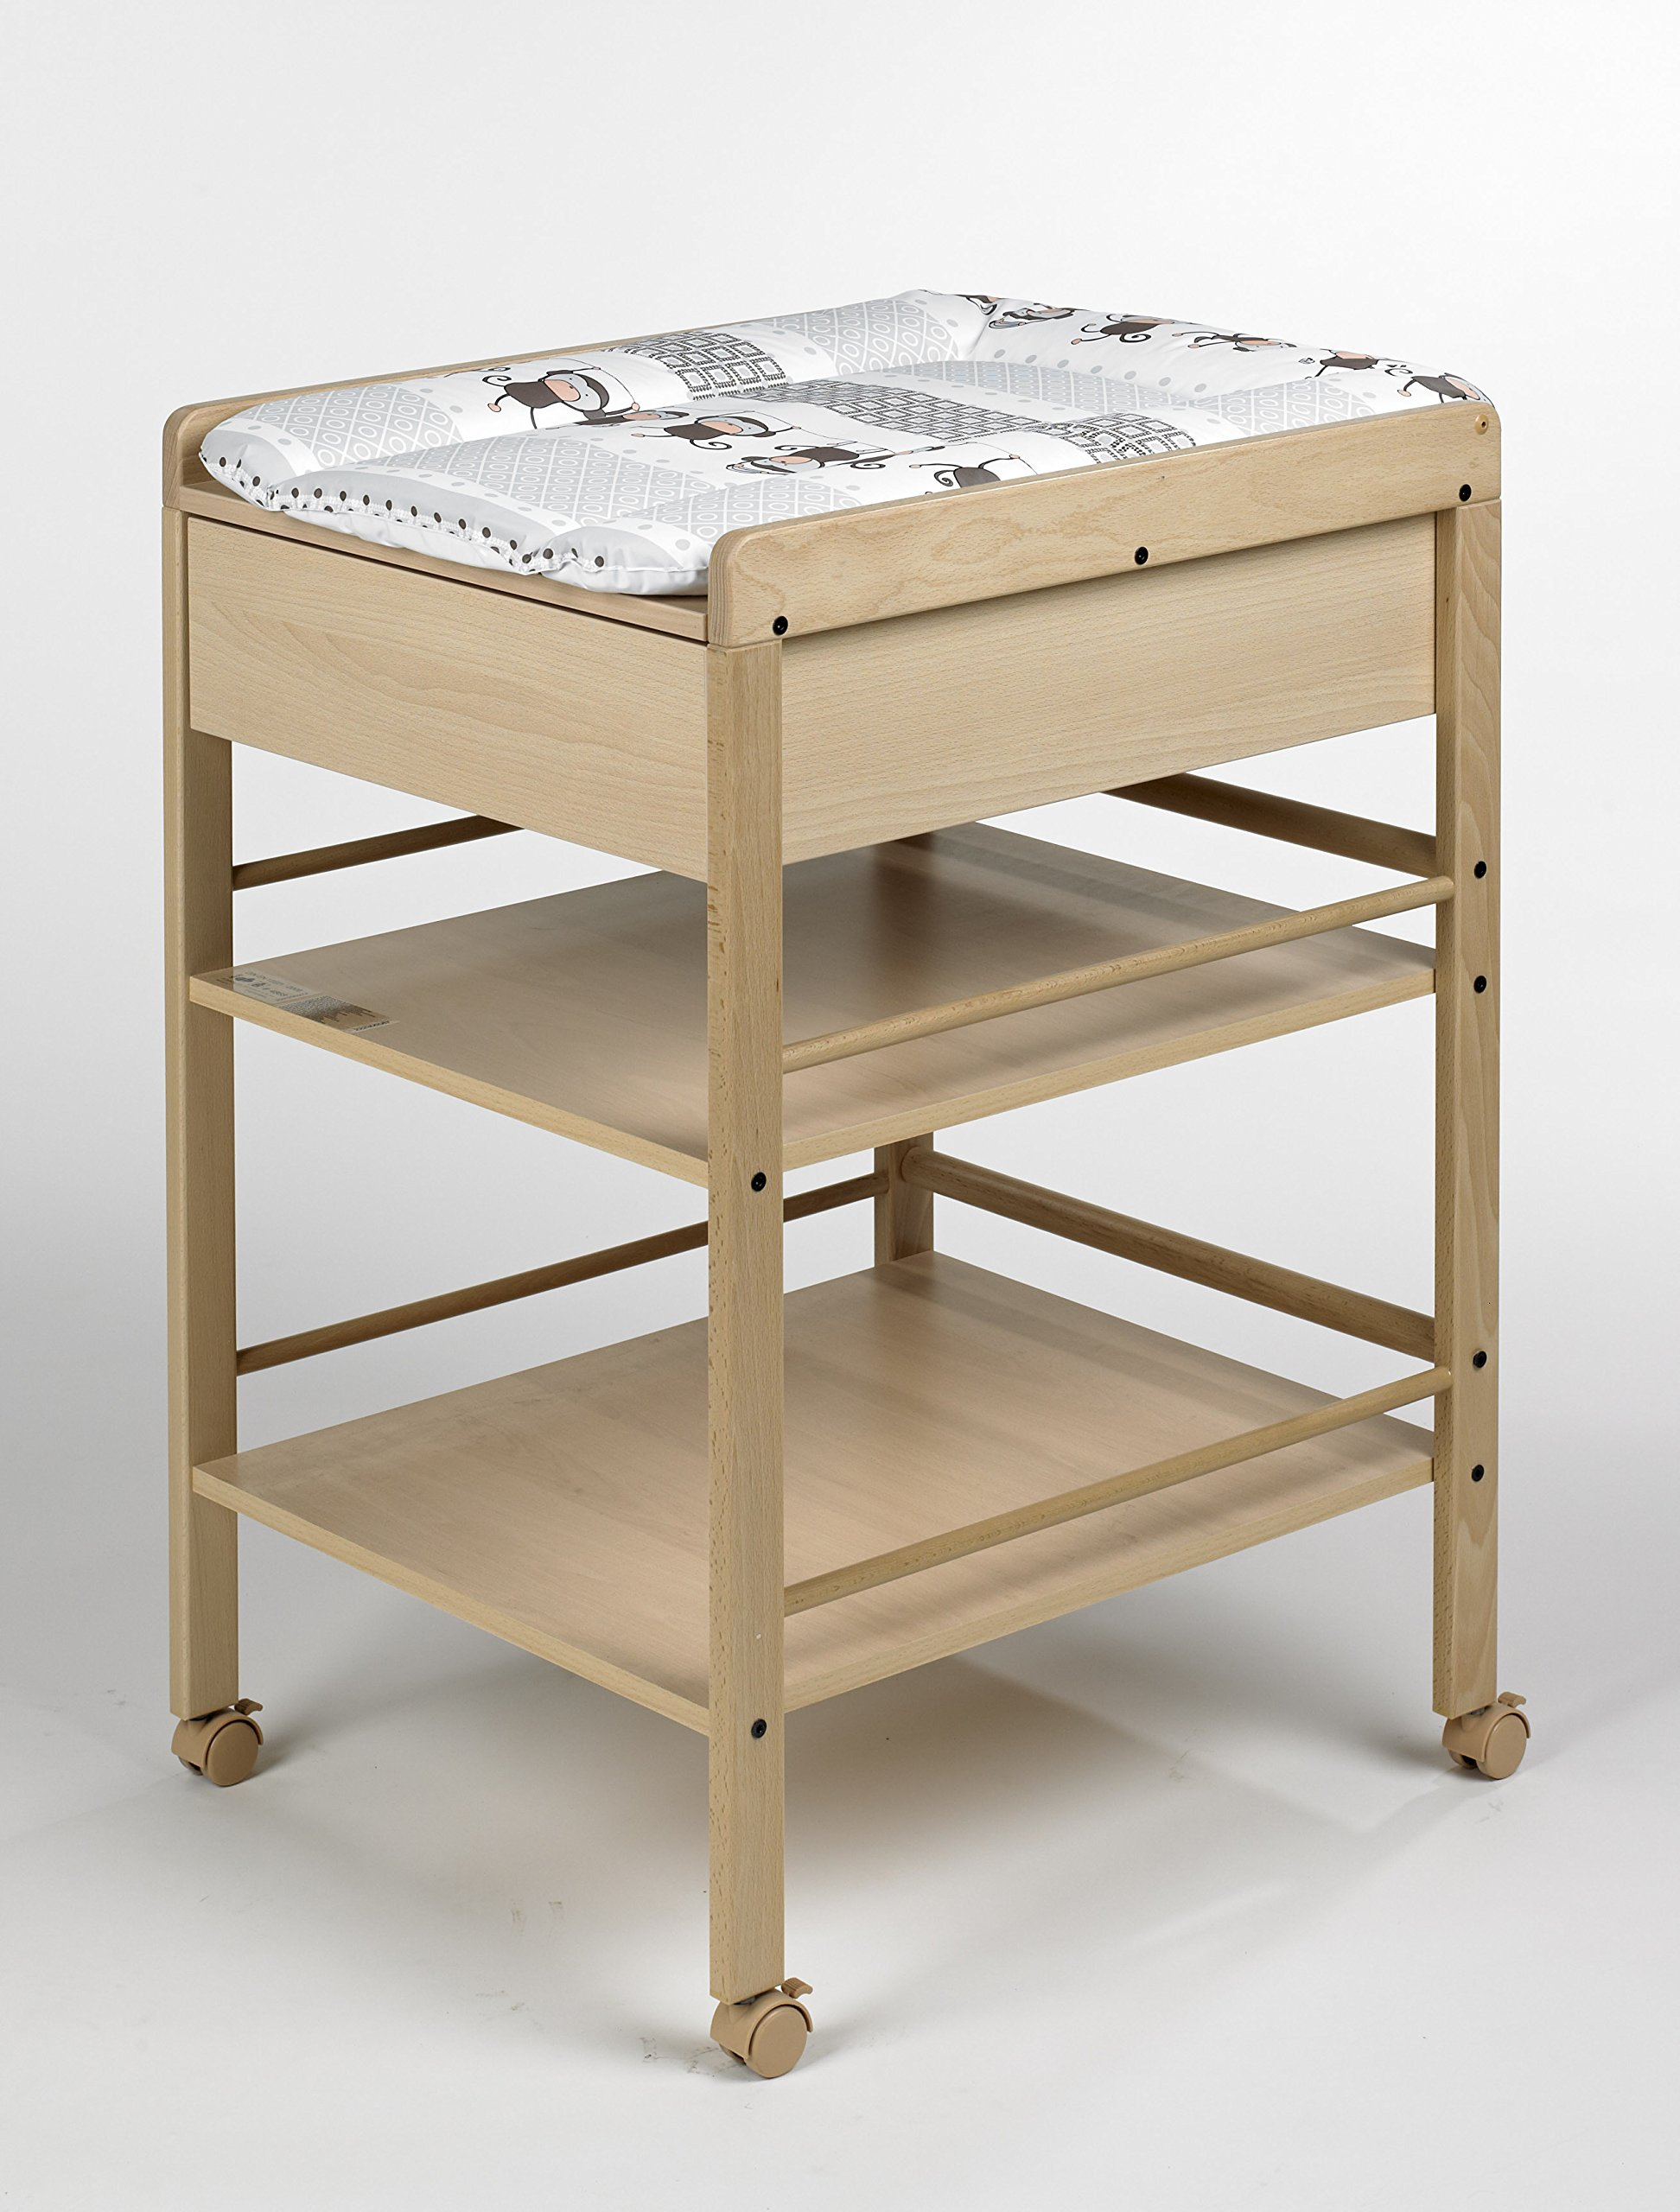 """Geuther Lotta Changing Table (Natural) Geuther Geuther strive to minimise Volatile Organic Compounds """"VOC's"""" used in the manufacturer of product which means much less gas or odour emissions. Geuther use the highest quality beech wood grown in Germany in most of their manufacturing which makes their wooden products sturdier,longer life,and much more resilient to knocks and bangs. Geuther use only water based lacquers and paints which means nothing toxic is present in any of their furniture. 2"""